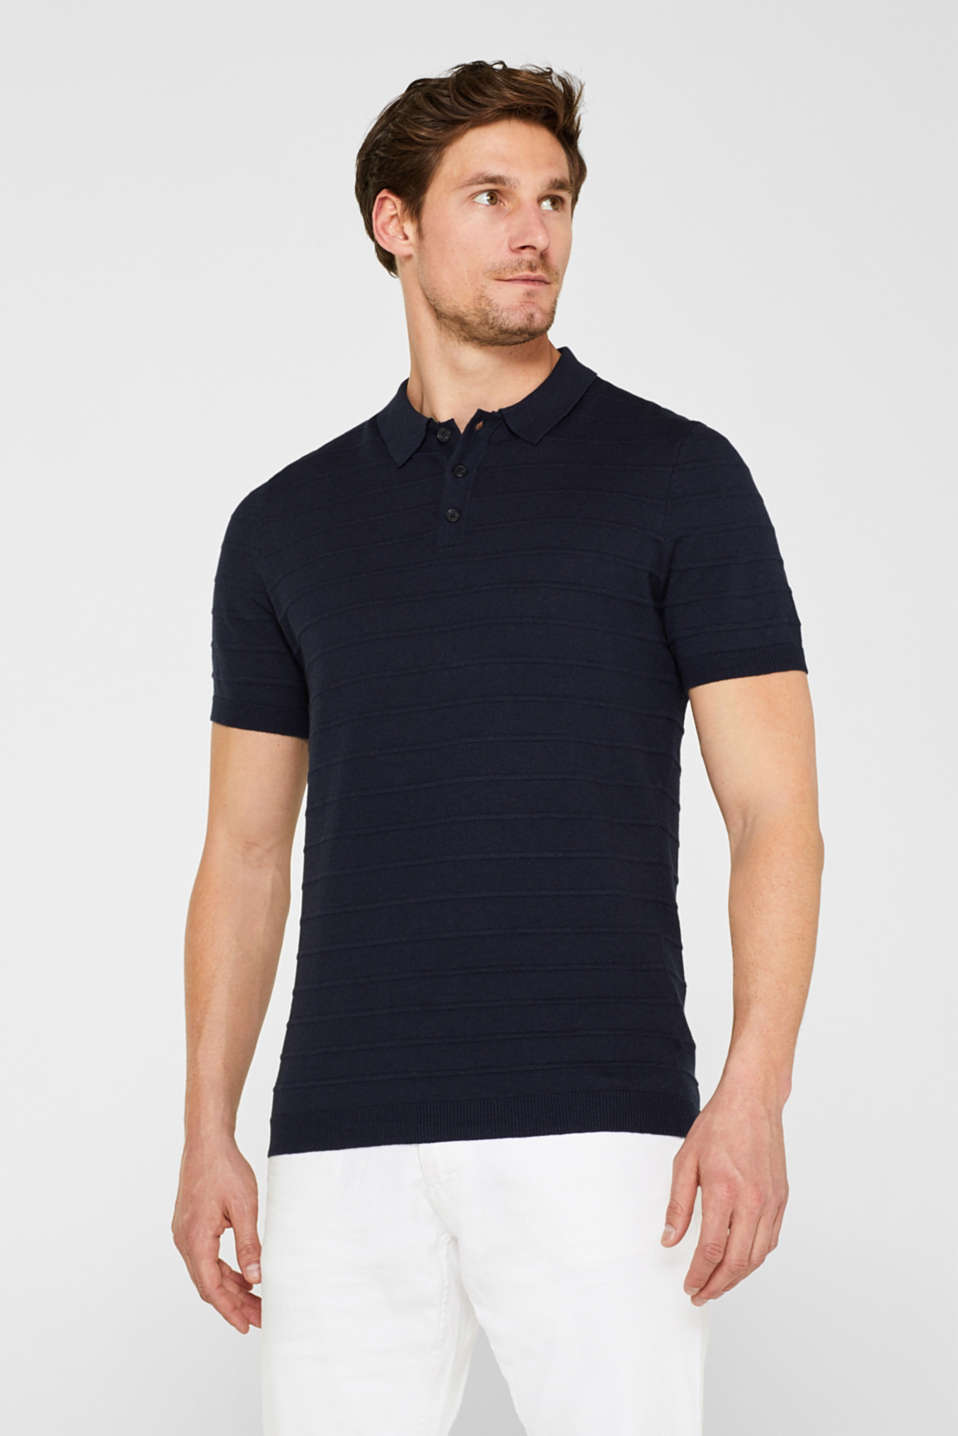 Esprit - Linen blend: polo shirt made of lightweight knit fabric